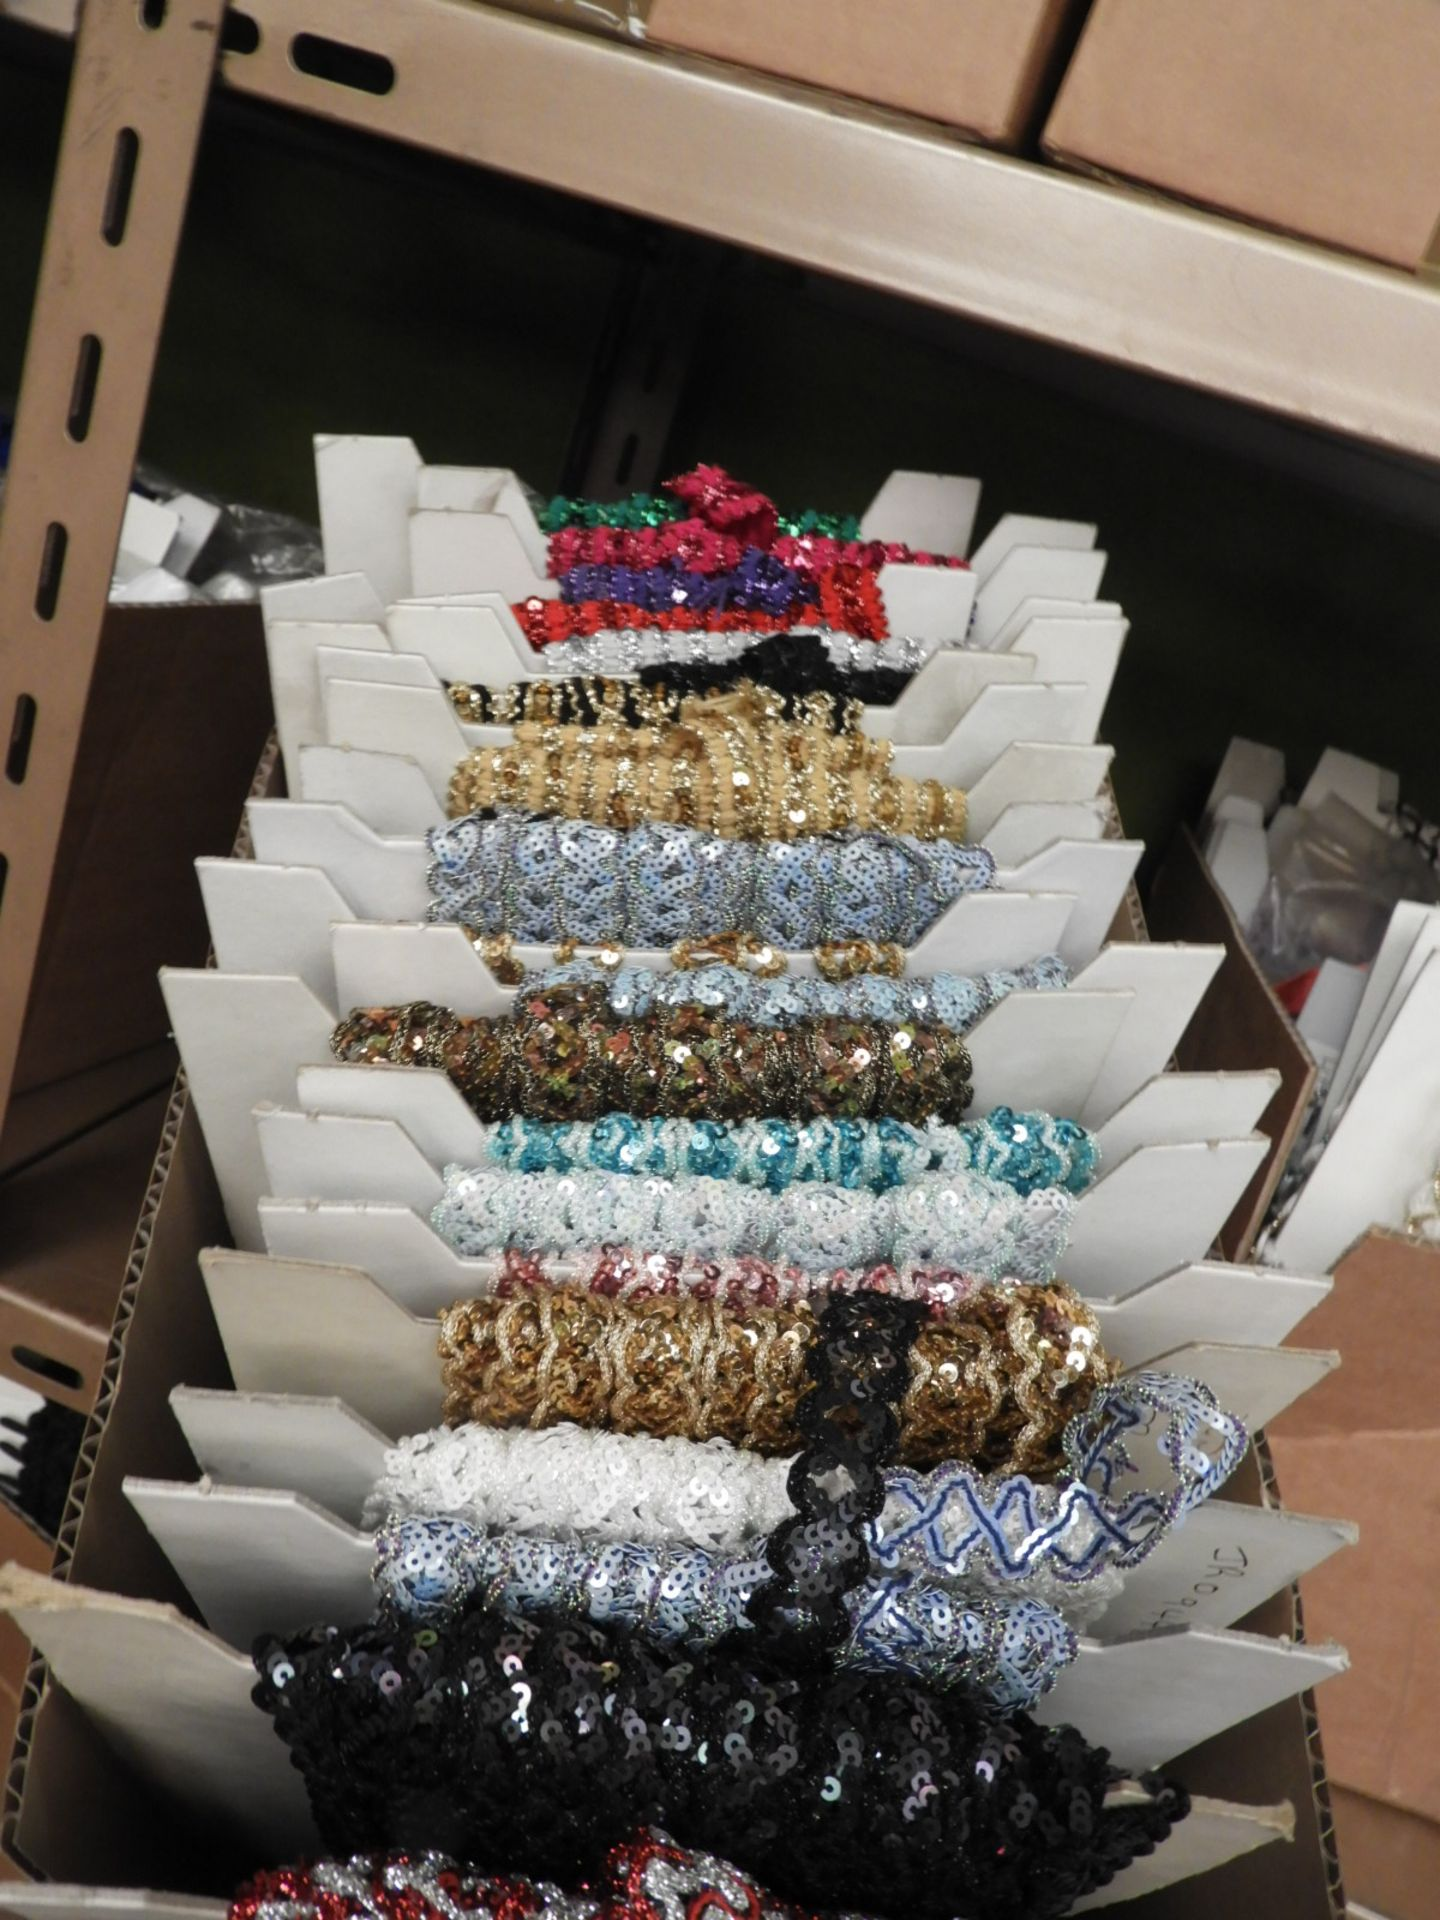 Box Containing Assorted Braids (as per Photograph)